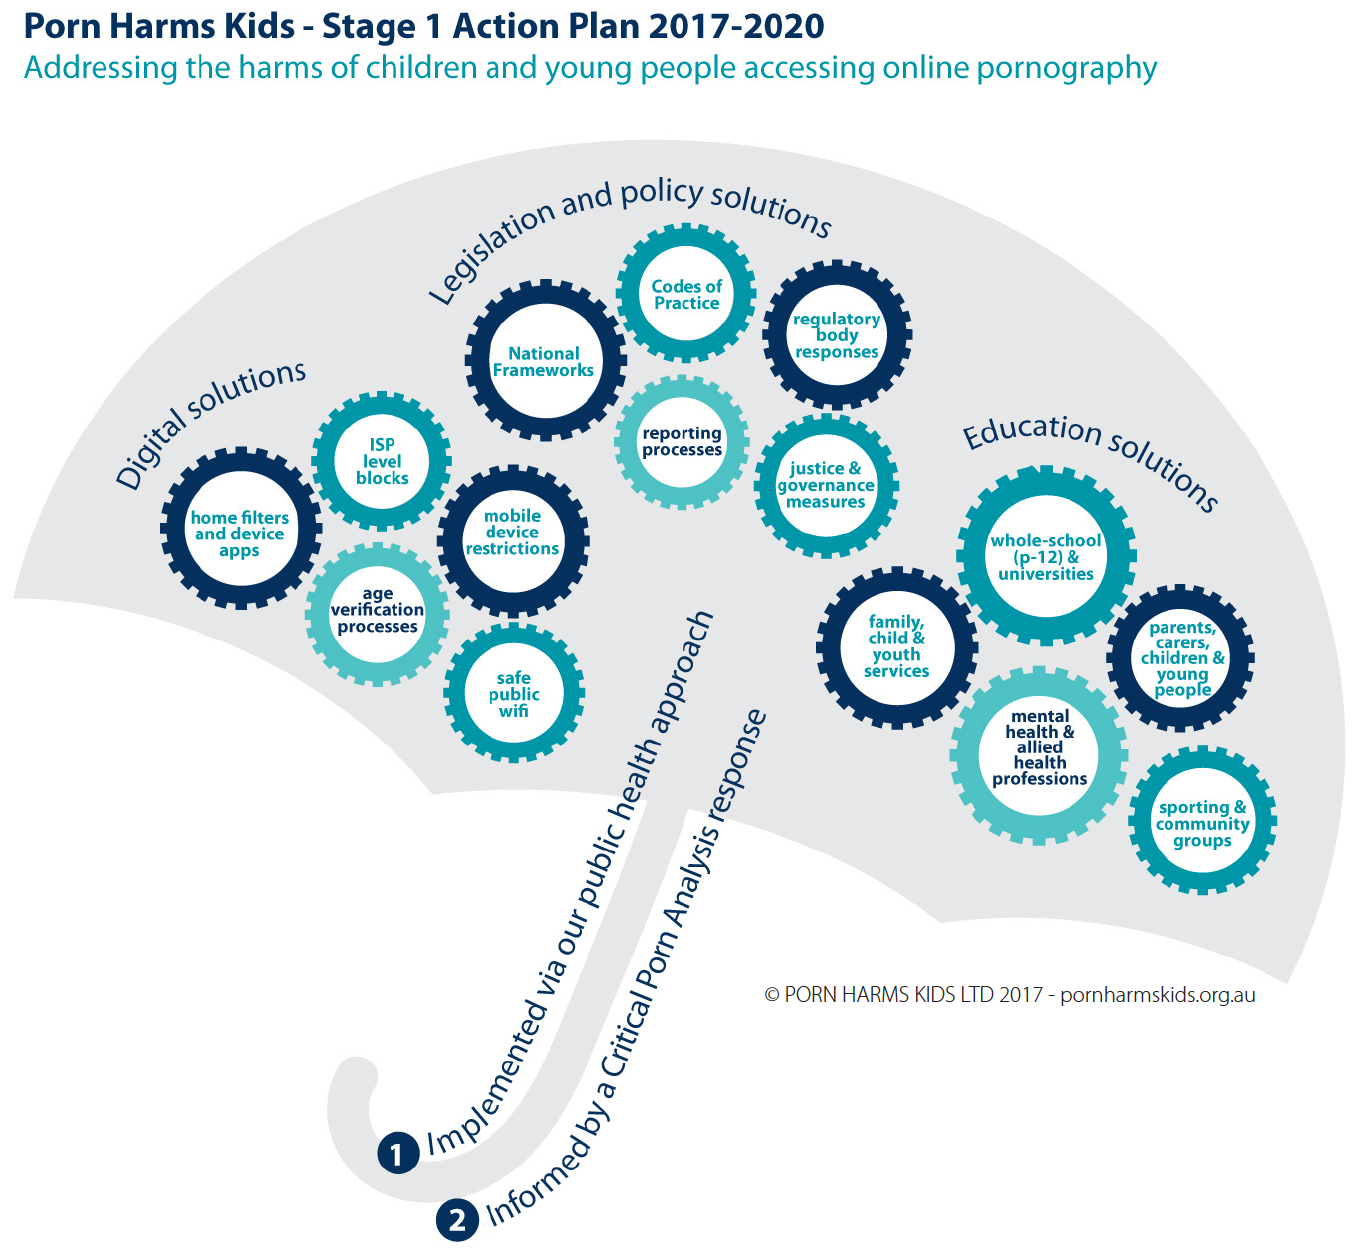 PHK-Stage_1_Action_Plan_2017-2020.png